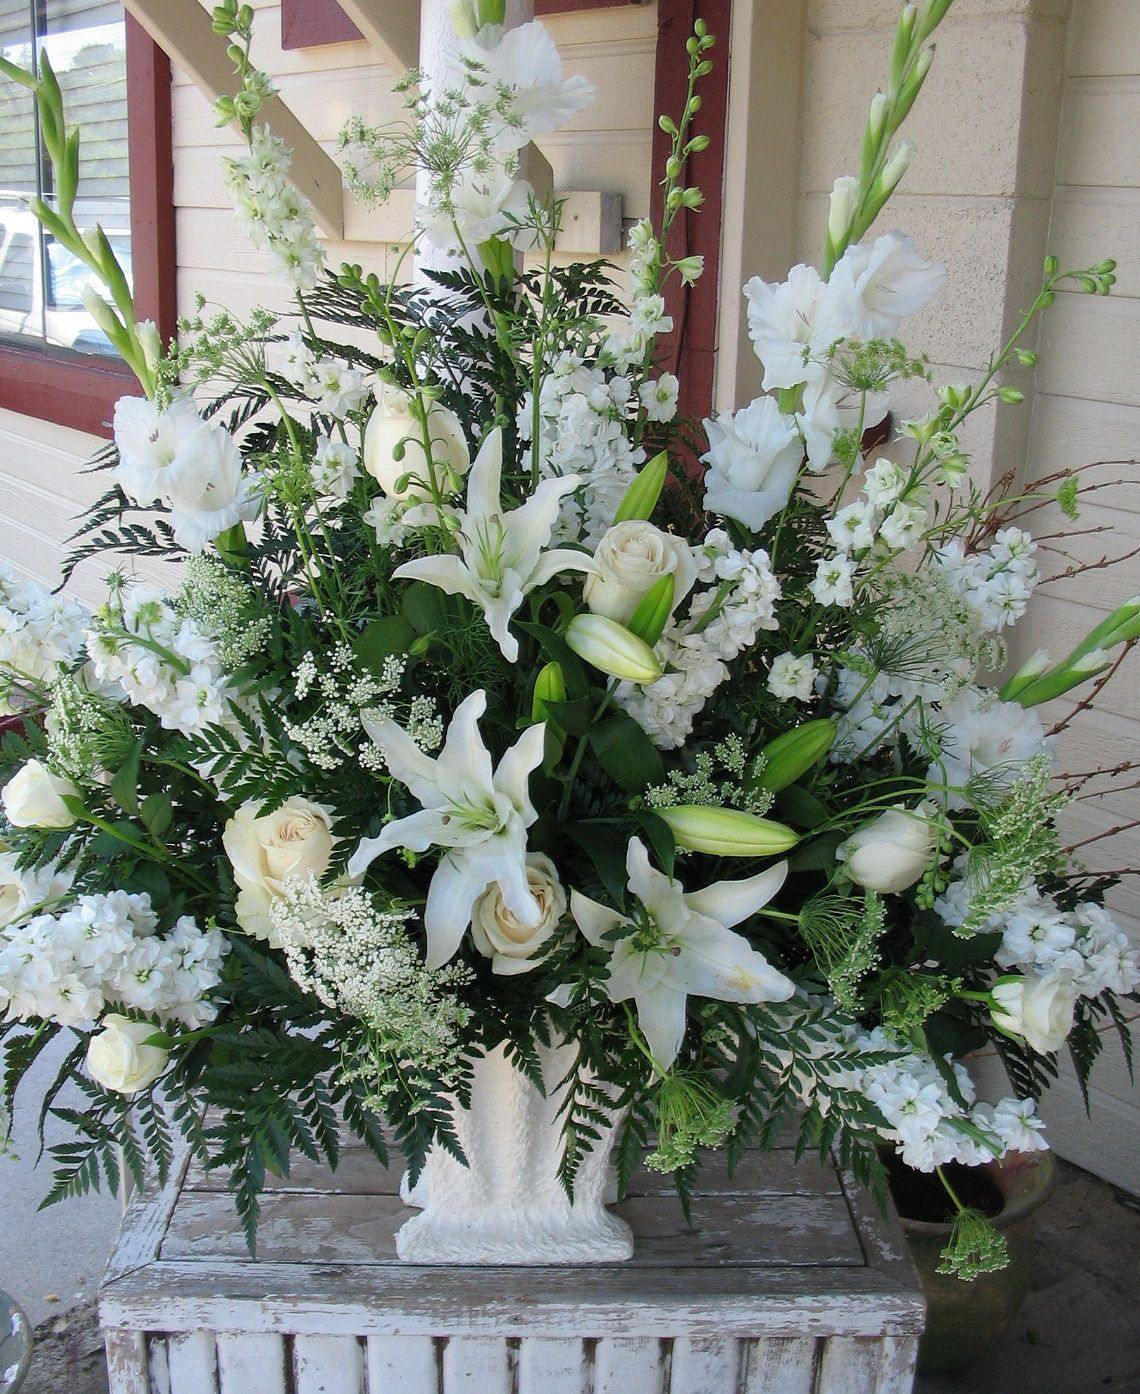 Wedding Altar Centerpieces: CHURCH WEDDING ALTER FLOOWERS